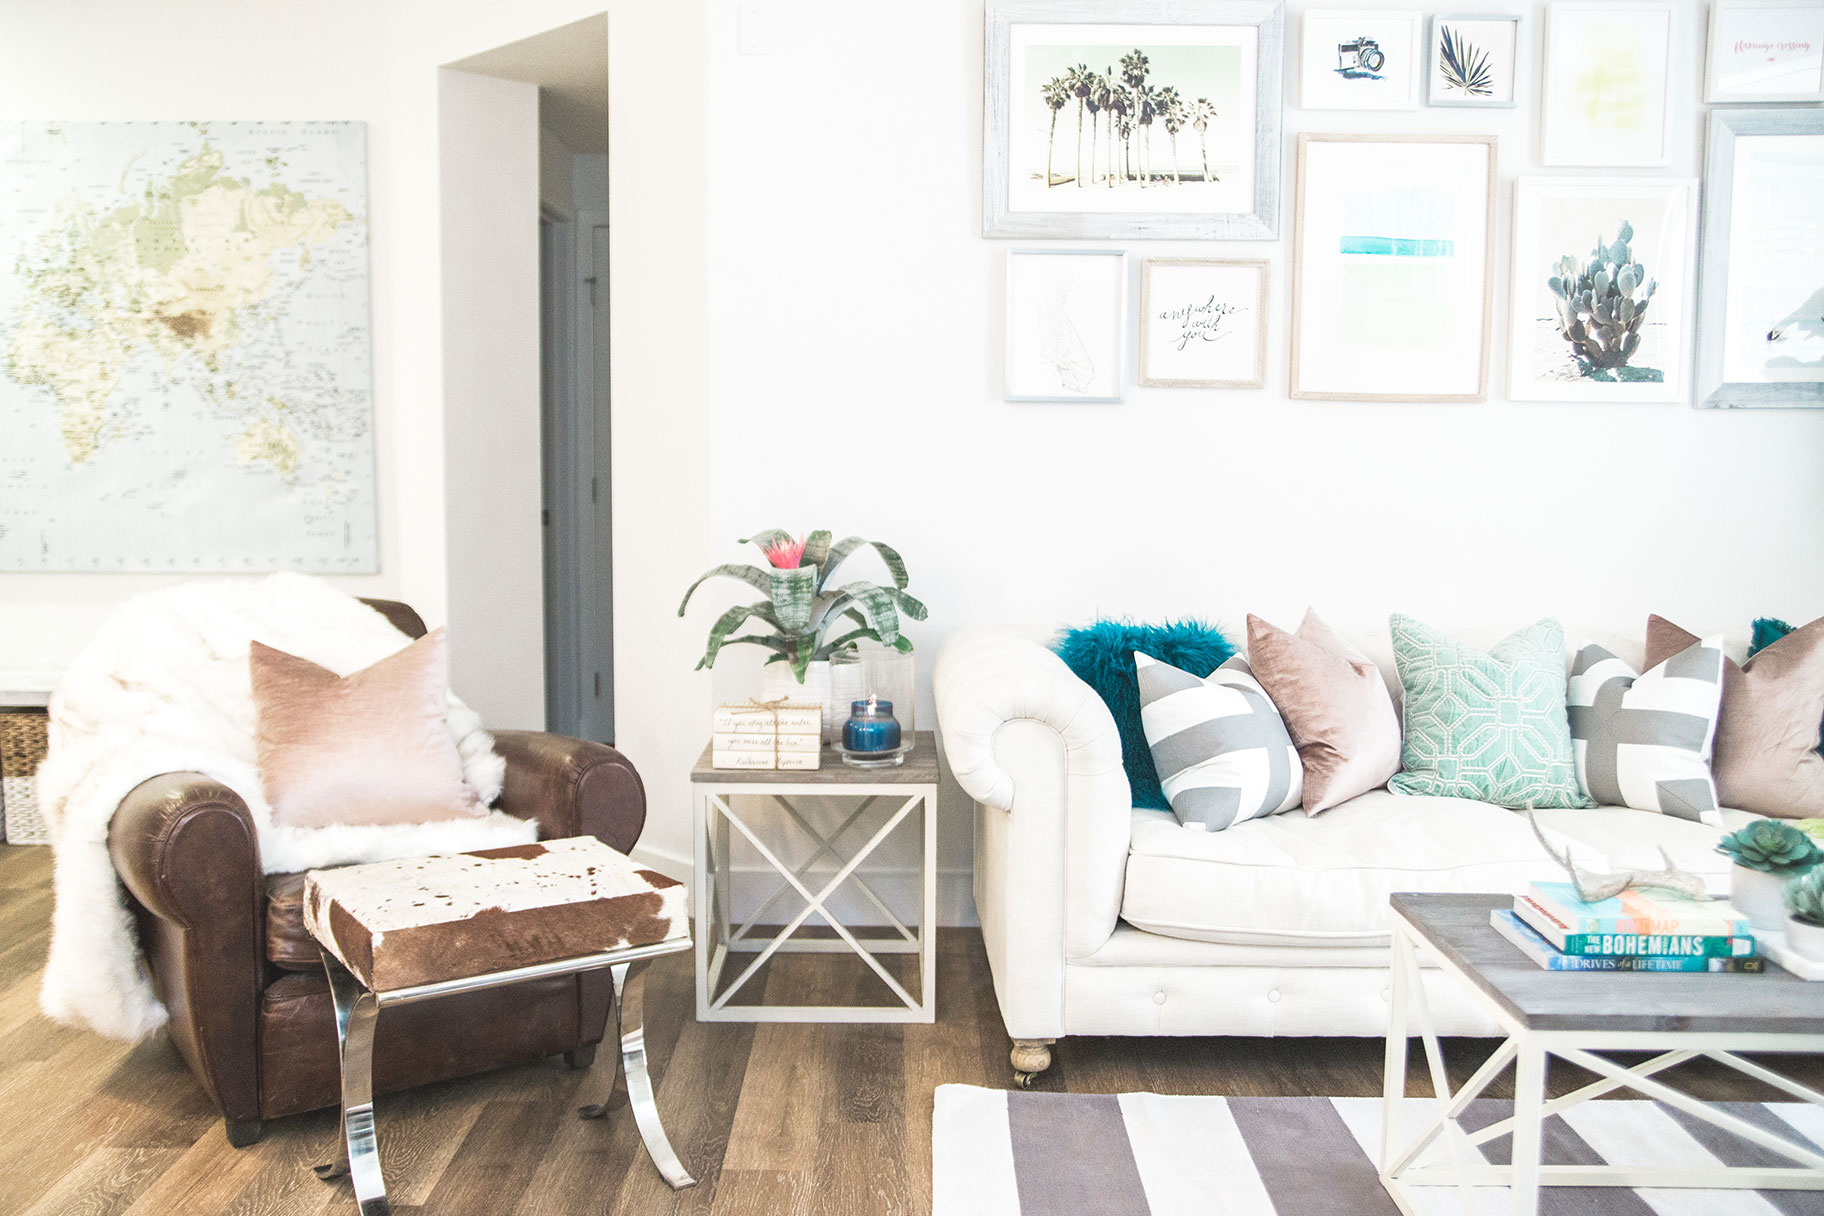 Shop The Look: Decorate Like A Pro With Throw Pillows | Havenly Hideaway